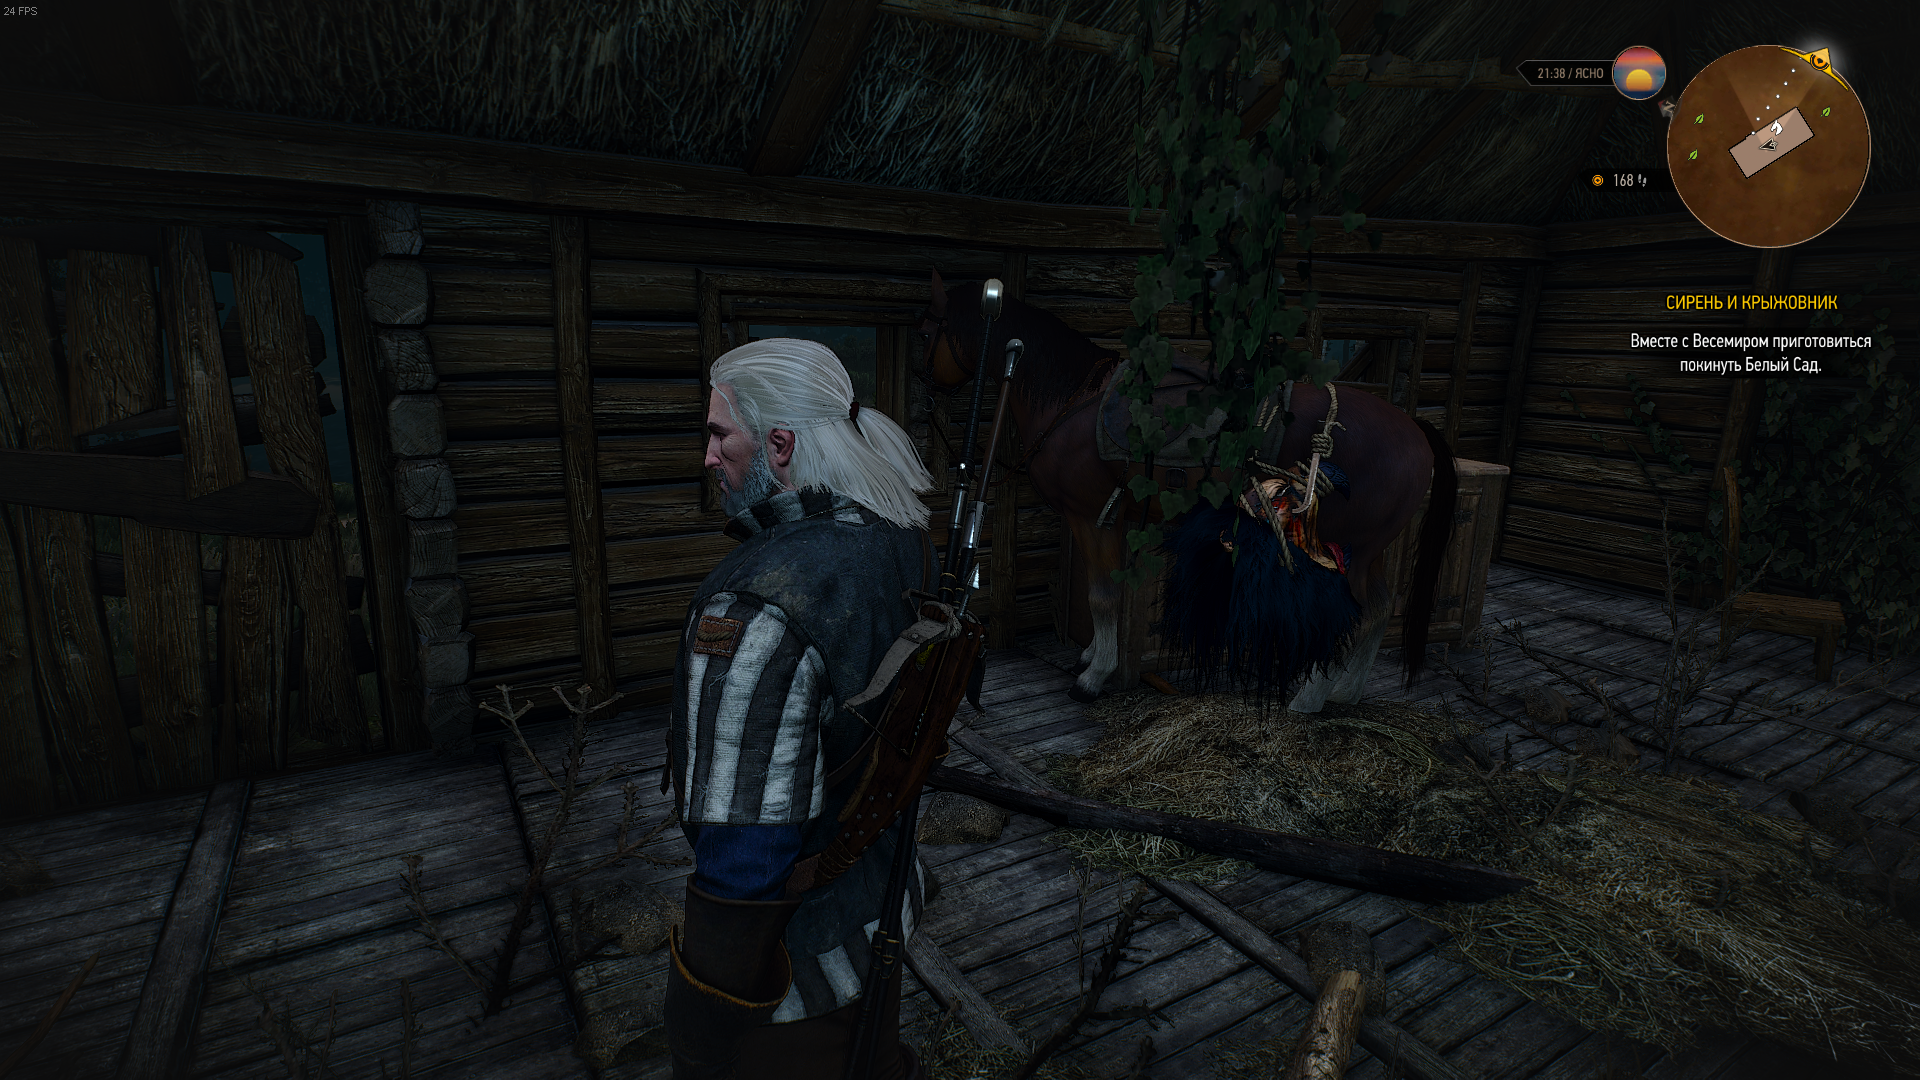 The Witcher 3 Screenshot 2020.07.19 - 21.59.54.36.png - The Witcher 3: Wild Hunt